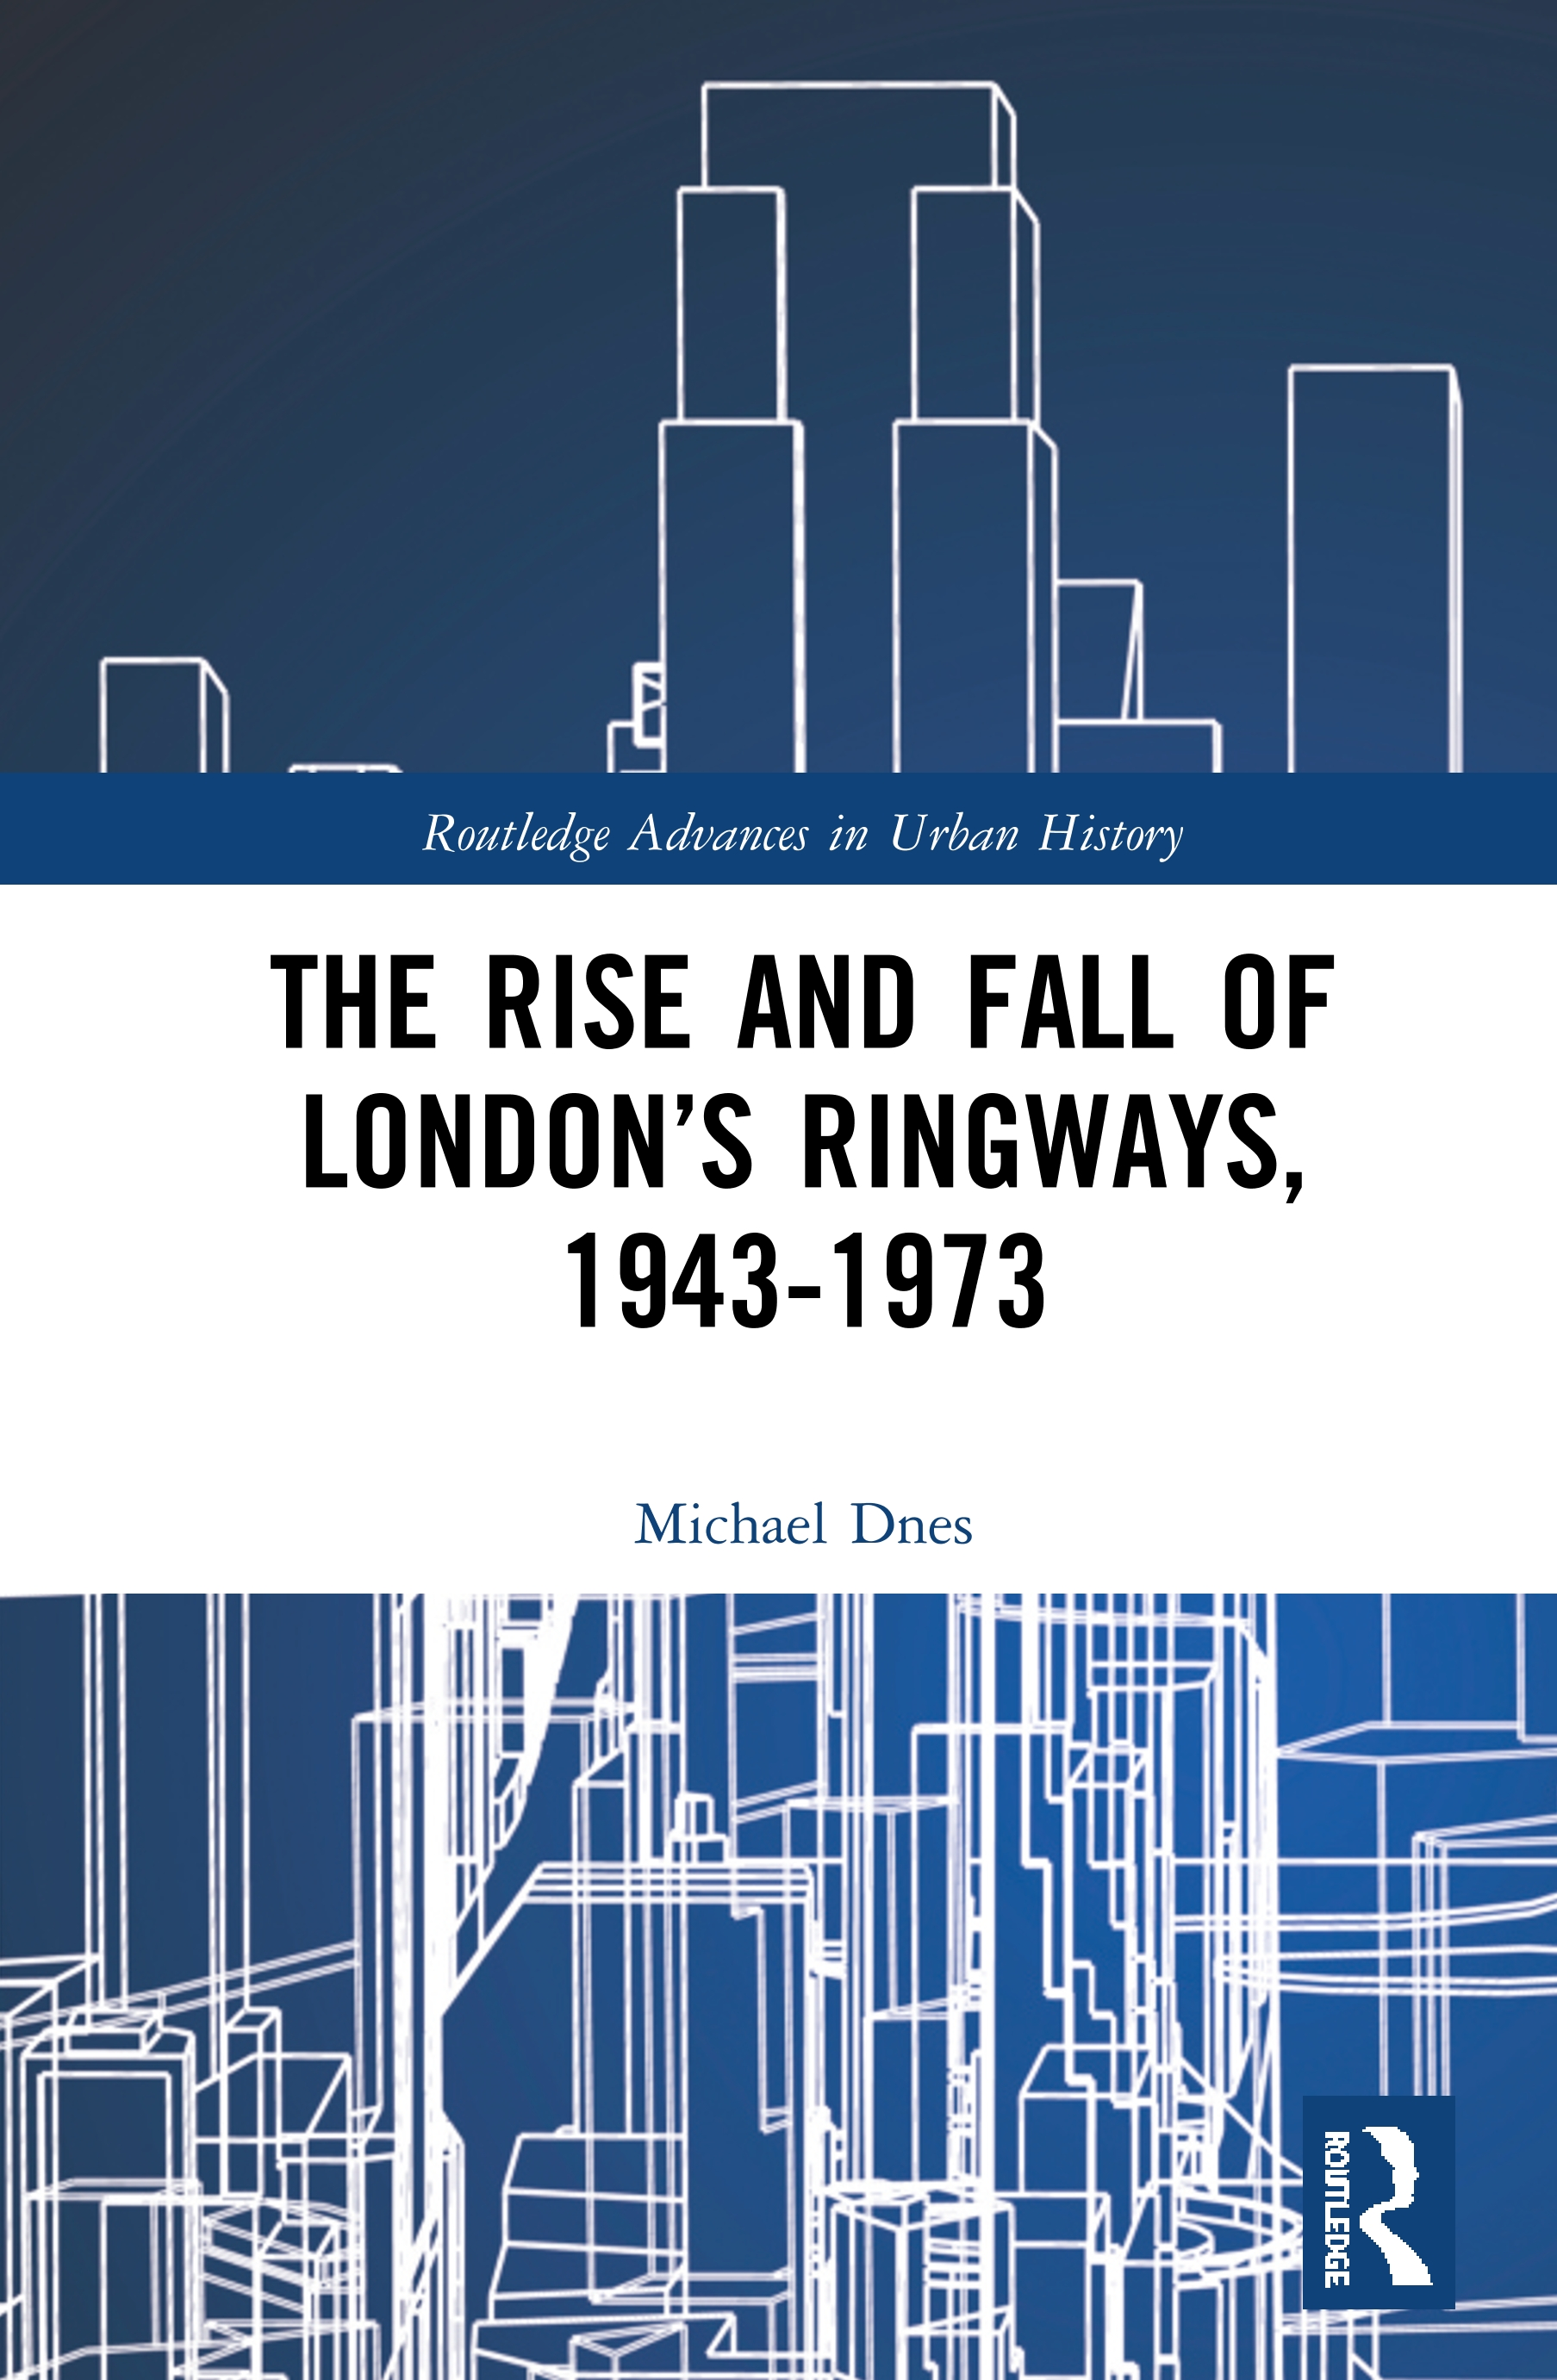 The Rise and Fall of London's Ringways, 1943-1973 book cover